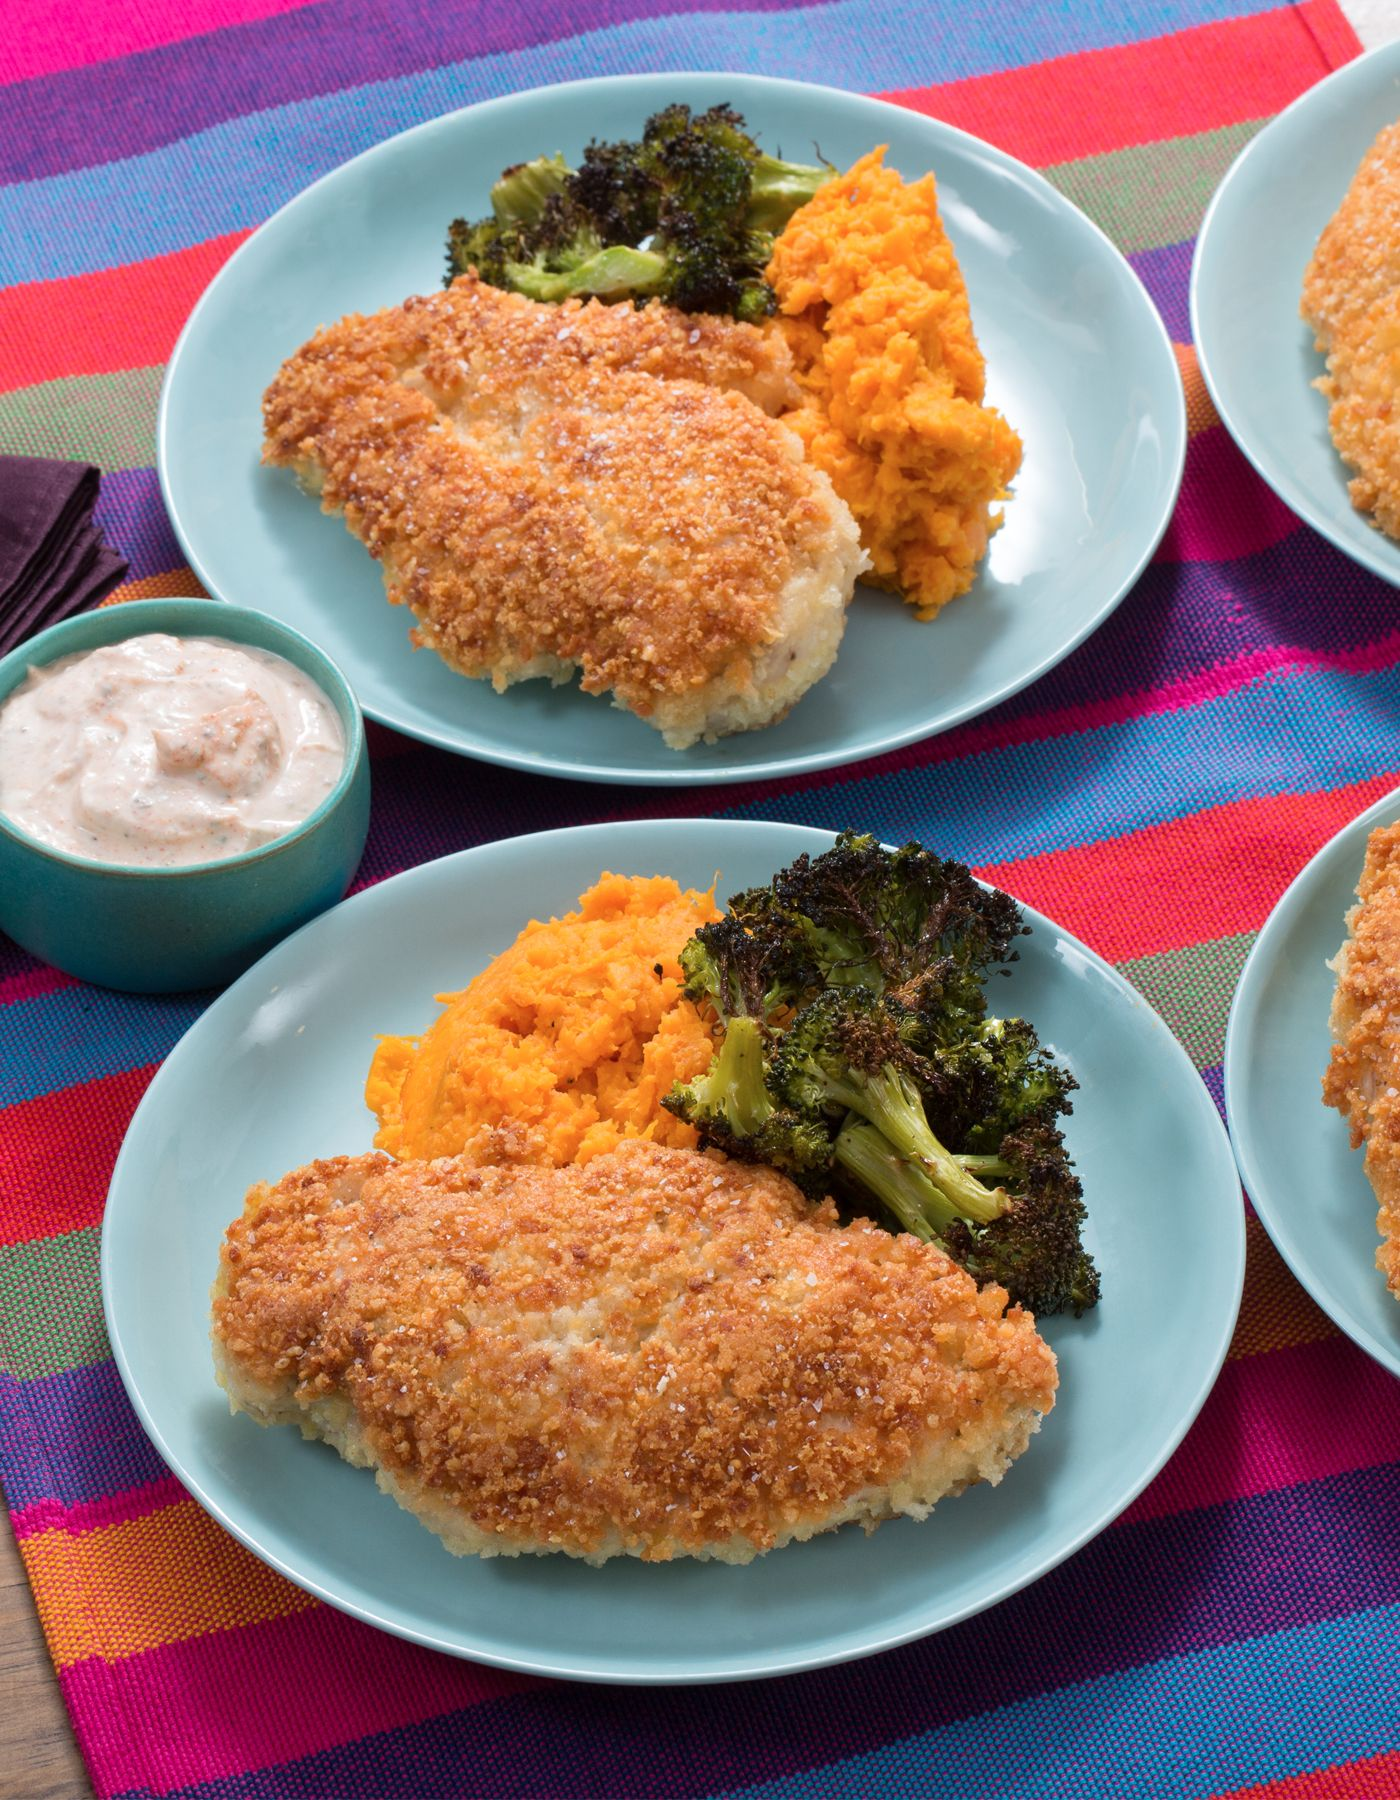 Blue apron broccoli - Crunchy Parmesan Chicken With Roasted Broccoli Mashed Sweet Potatoes